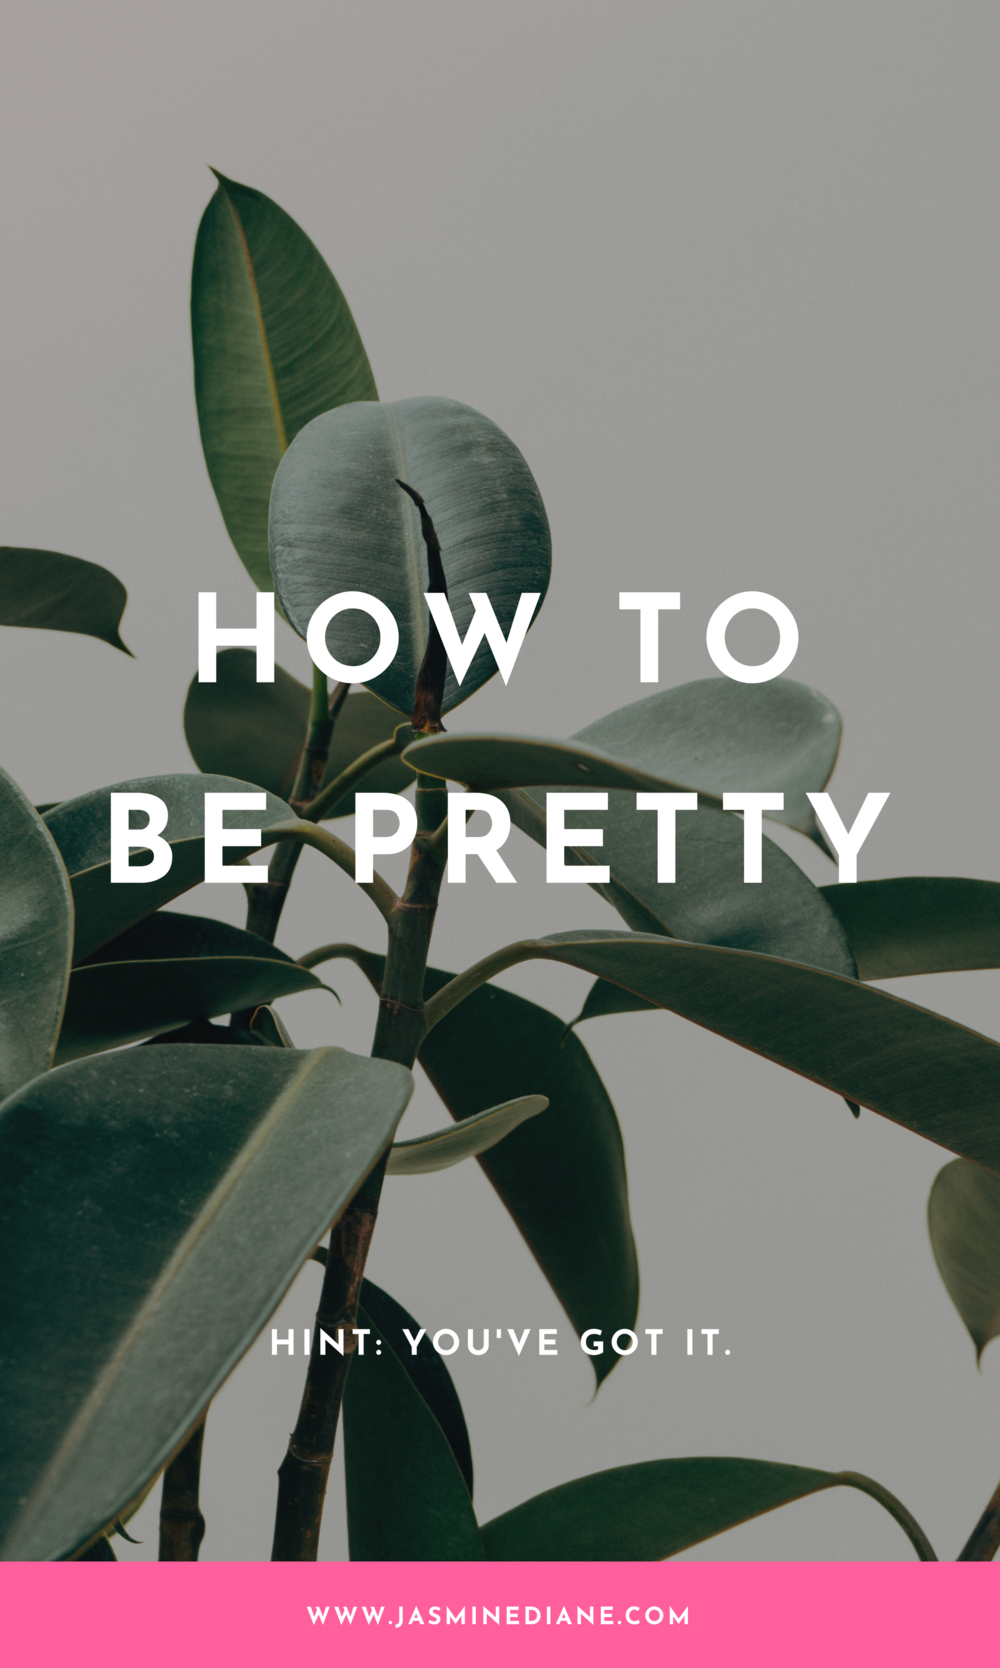 How to be pretty